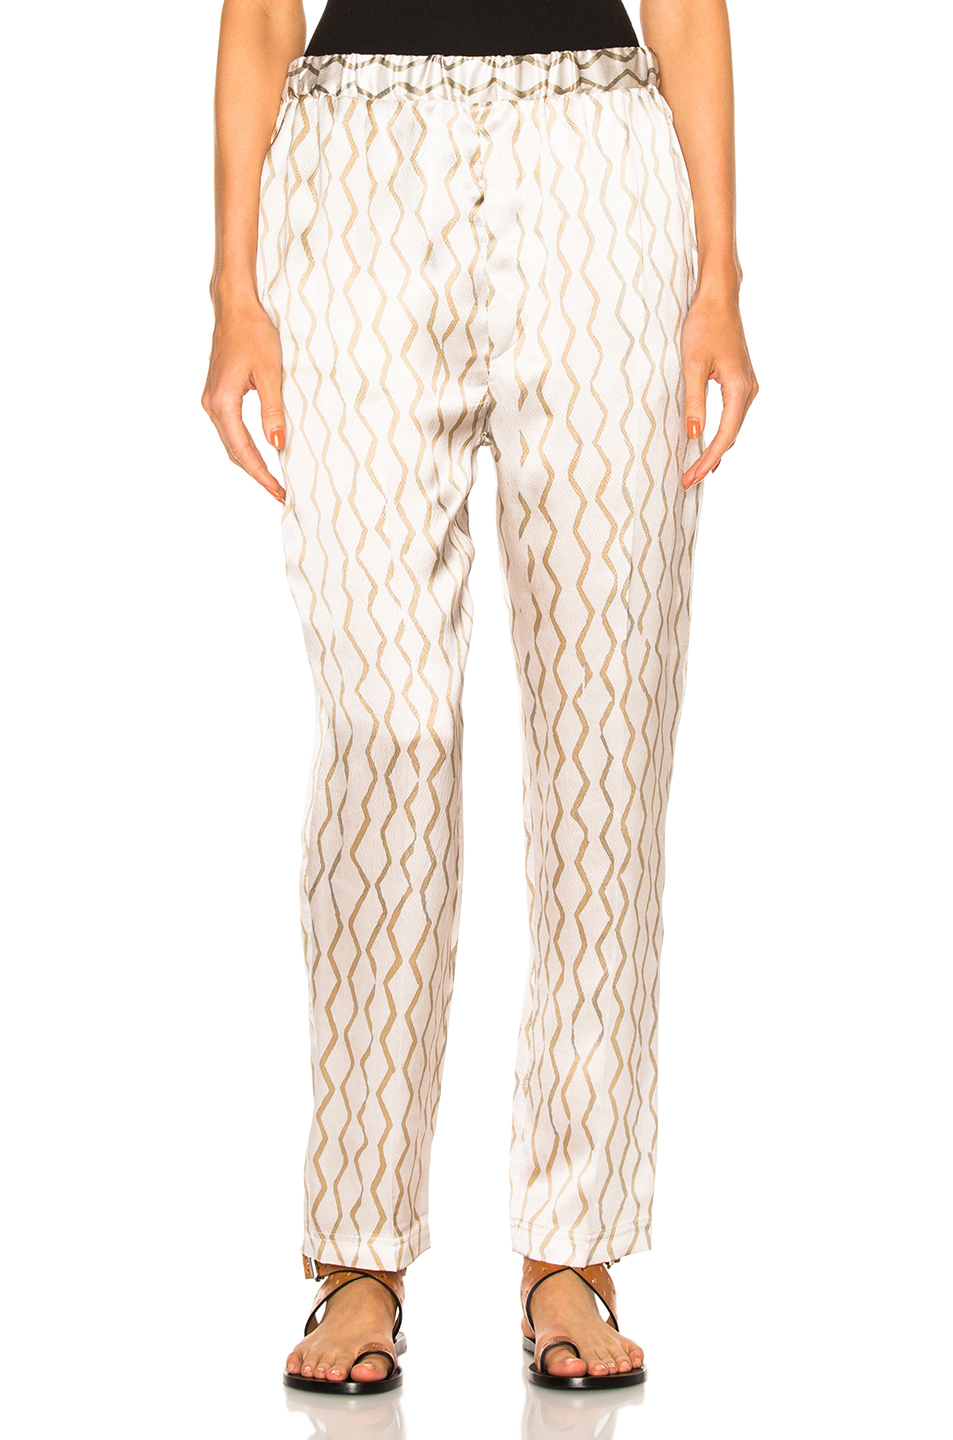 Isabel Marant Sonia Pants in Abstract,Metallics,Neutrals